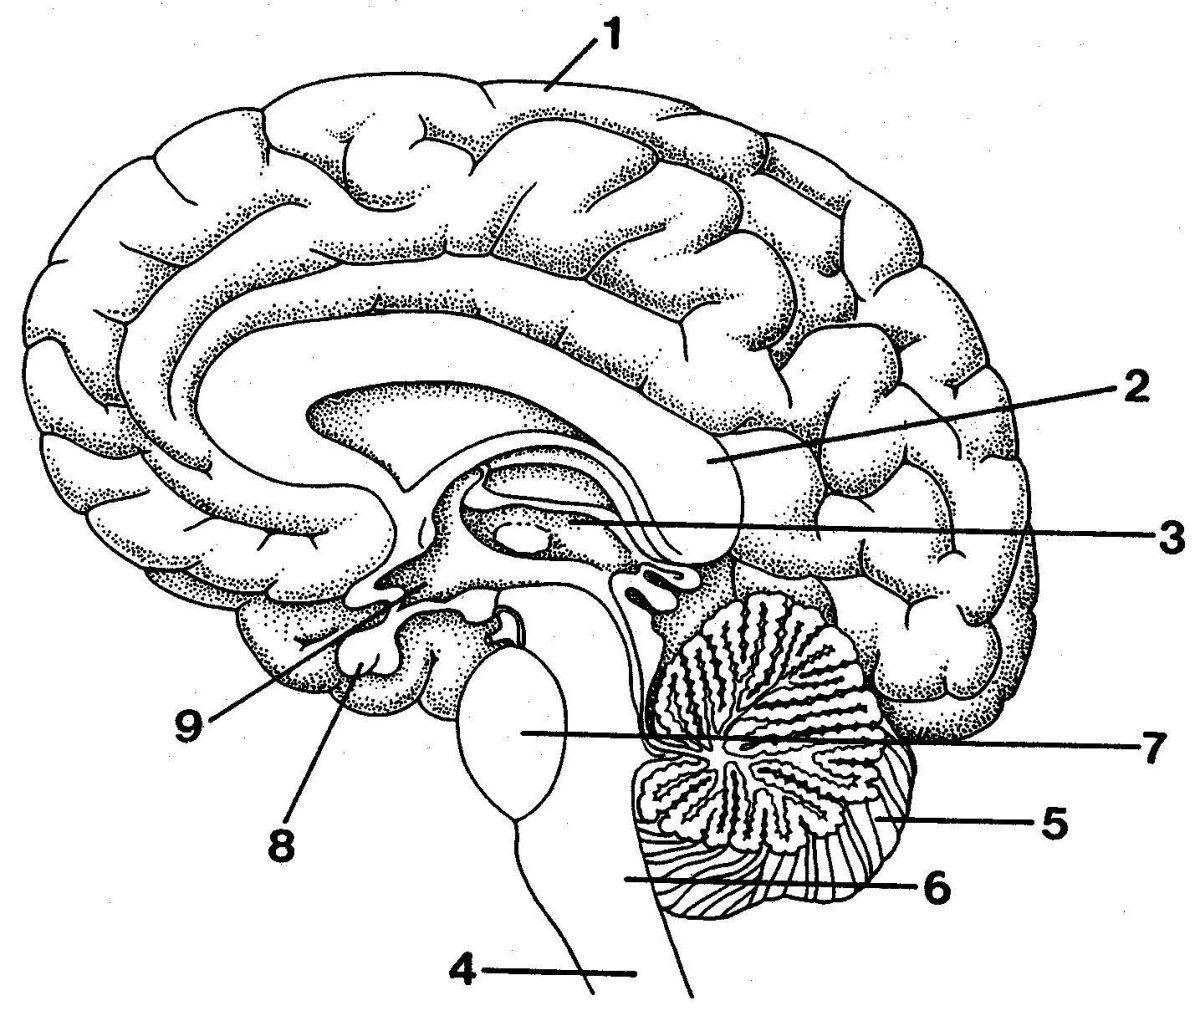 Blank Brain Diagram Blank Outline Of The Human Brain Printable Diagram Human Brain Koibana Info Brain Diagram Human Brain Diagram Basic Anatomy And Physiology